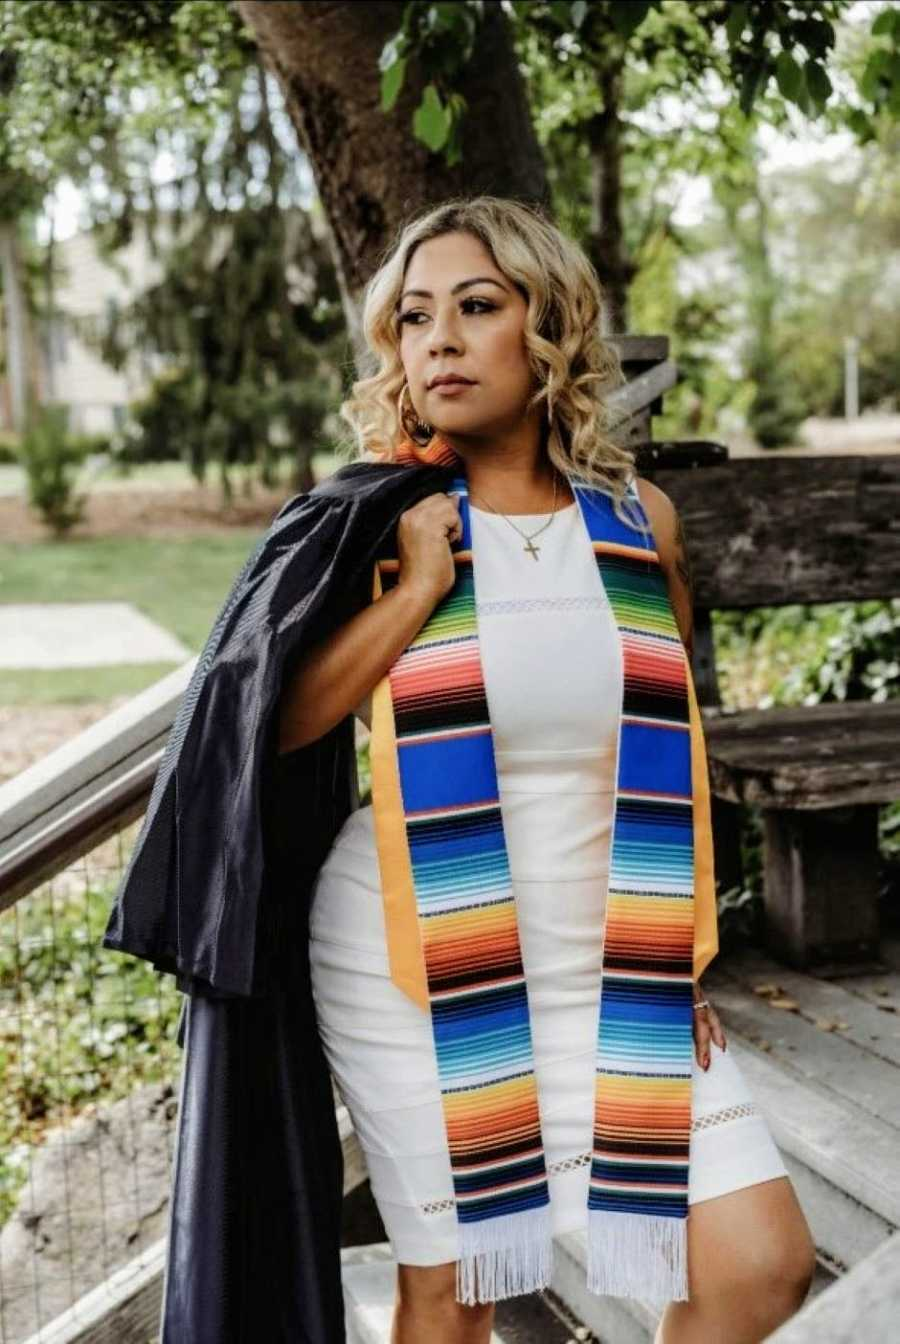 First generation college student takes graduation pictures at Sonoma State University